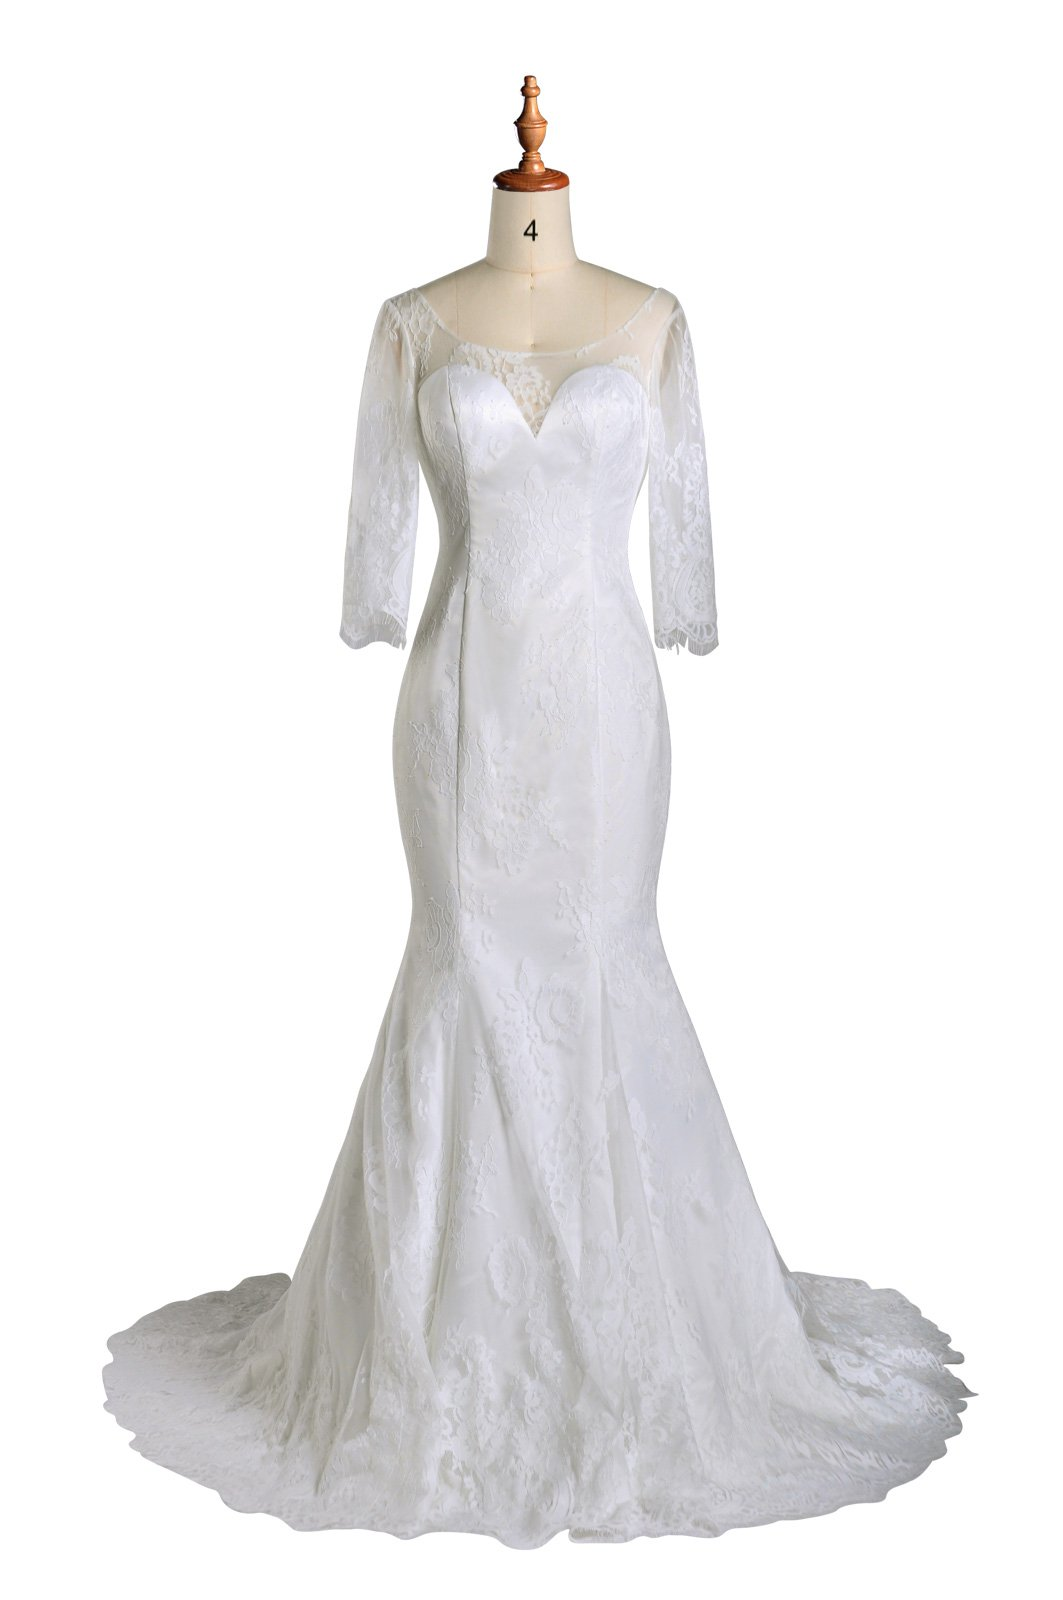 Wedding Dresses Mermaid Lace Long Sleeve Vintage Princess Bridal Gowns Simple Casual, Color Ivory,L